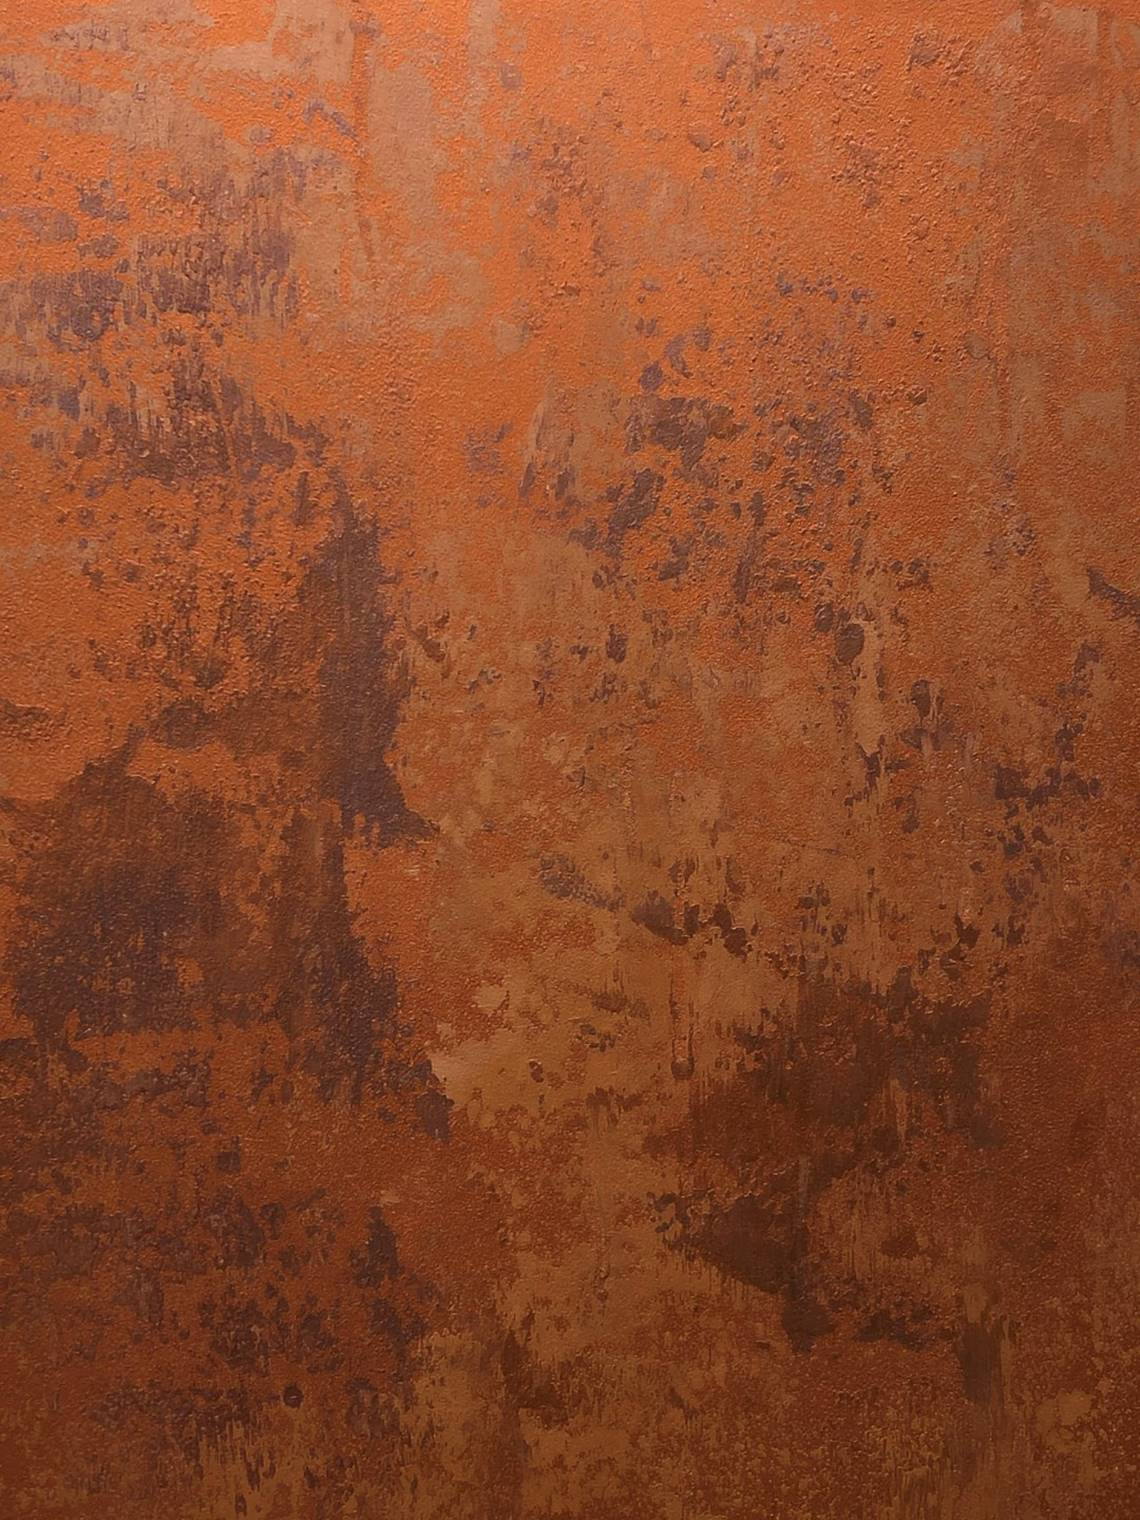 Burnished Copper Paint Effect